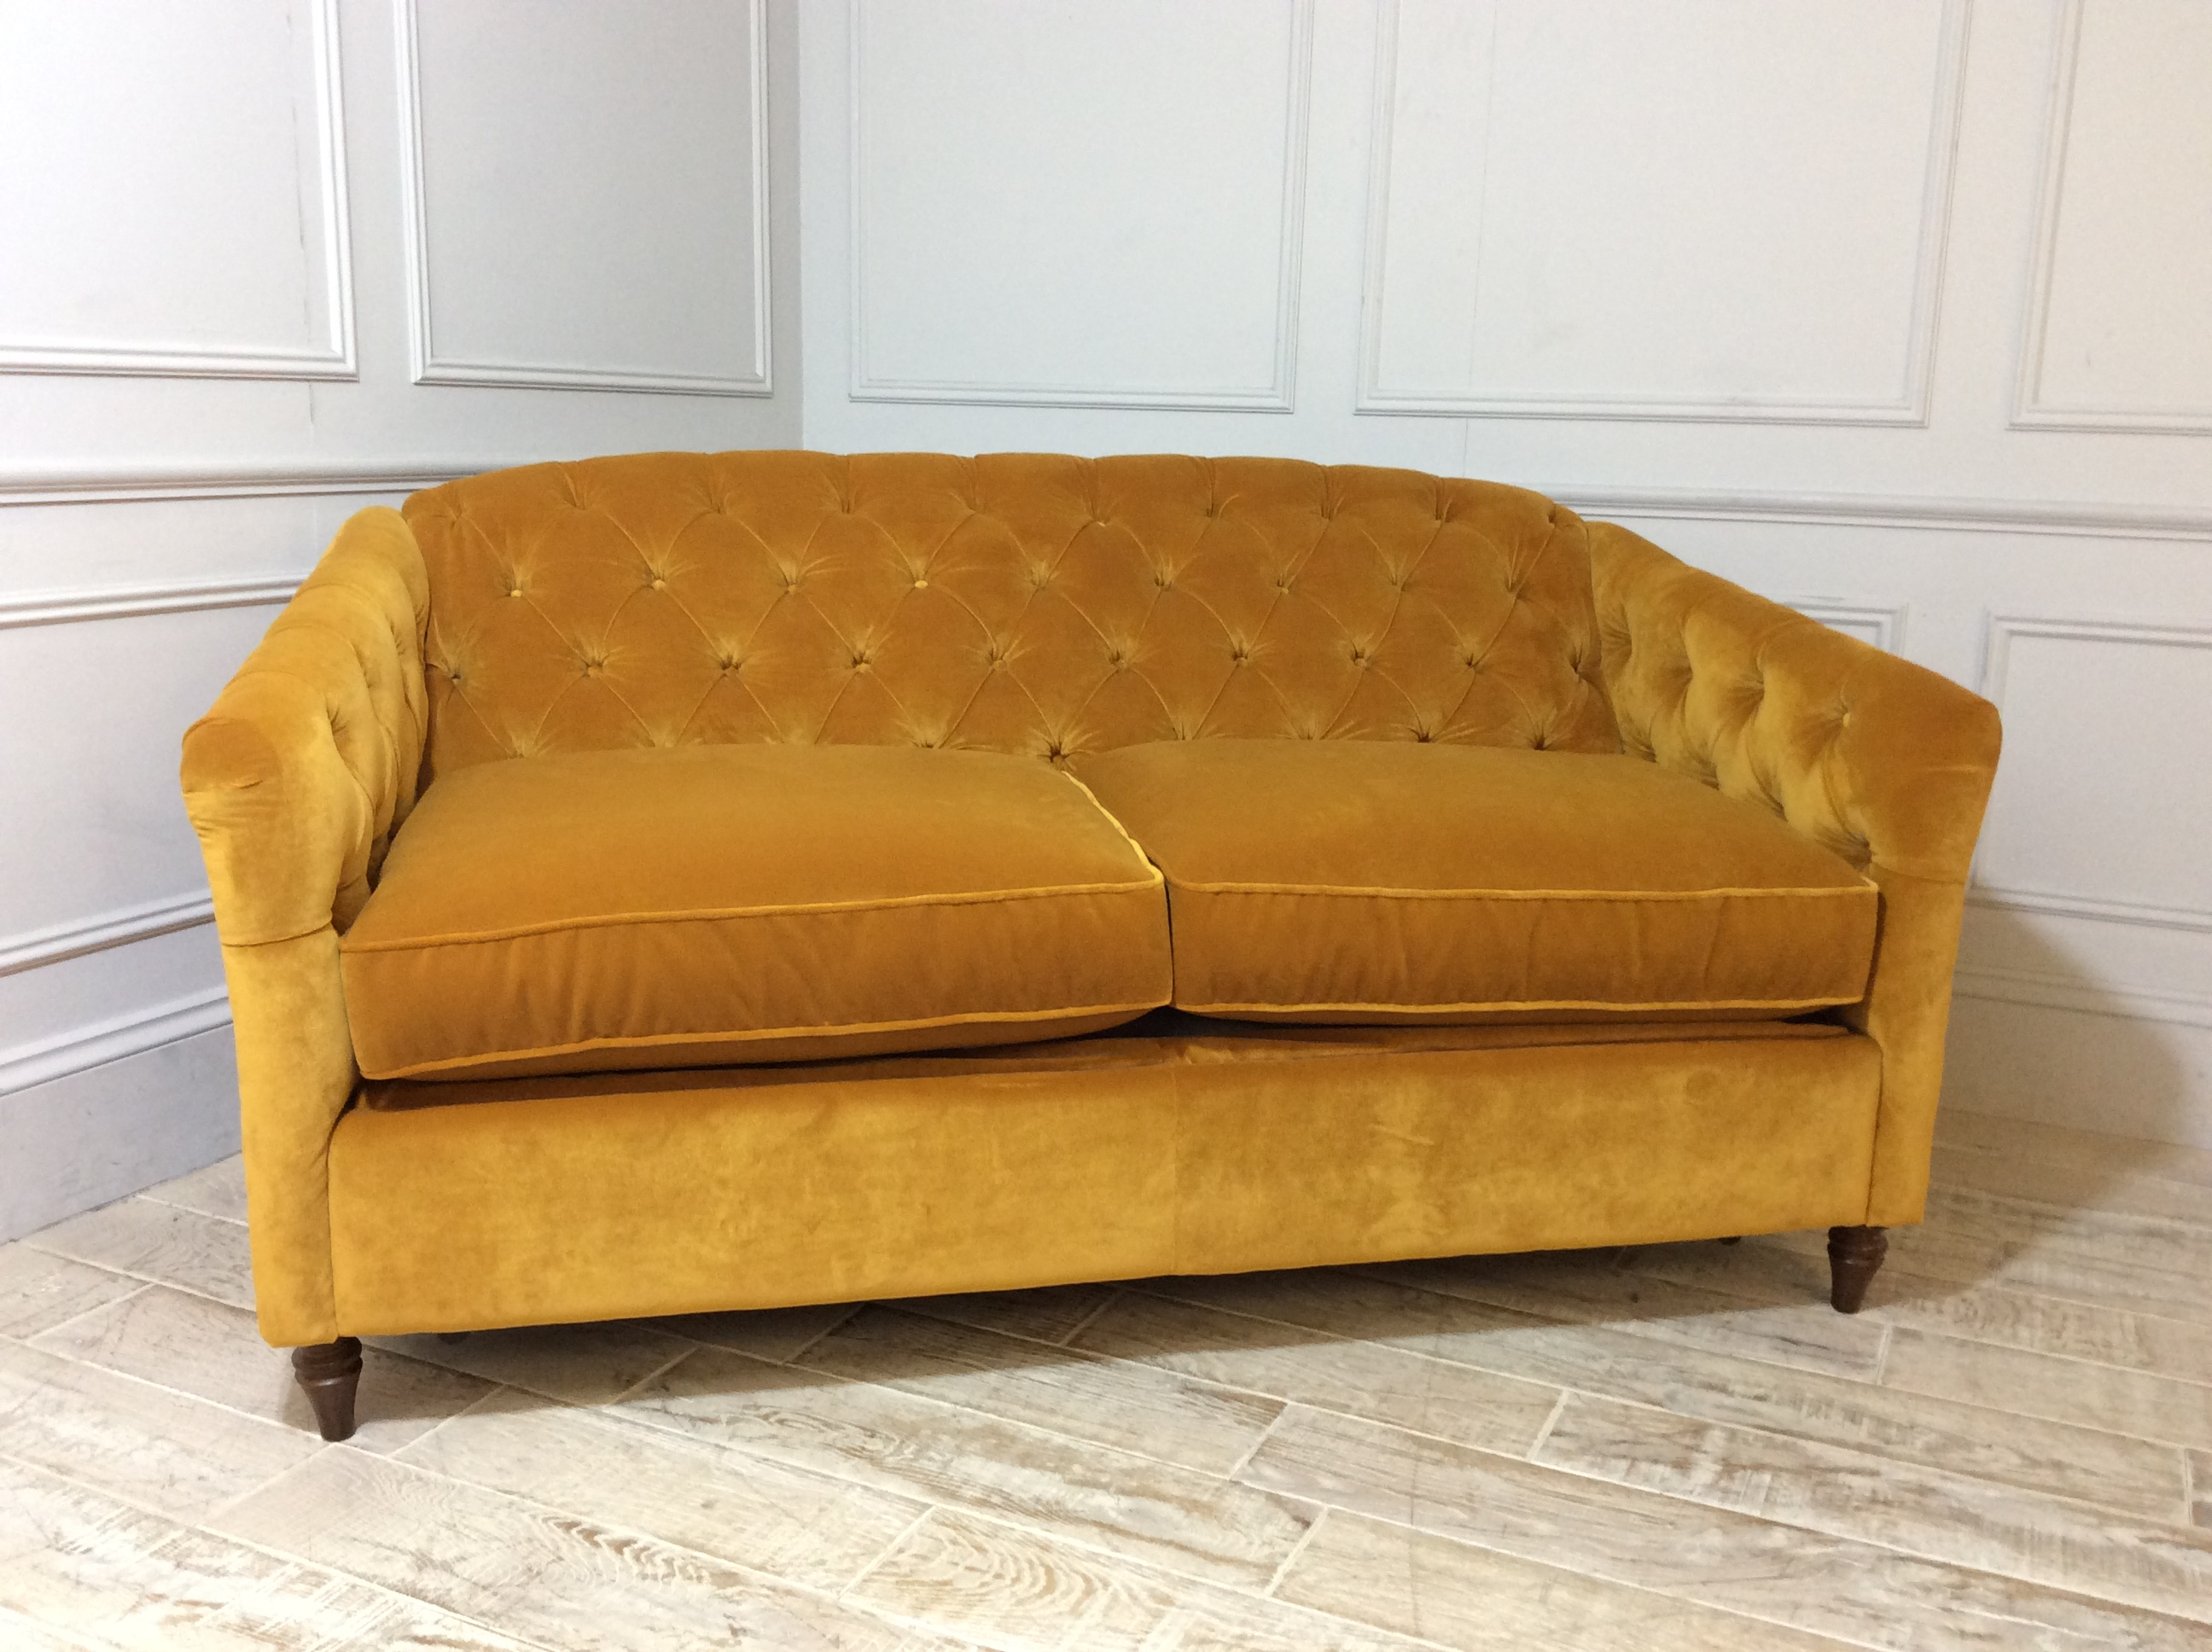 Payton 3 Seater Fabric Sofa Bed in Saffron